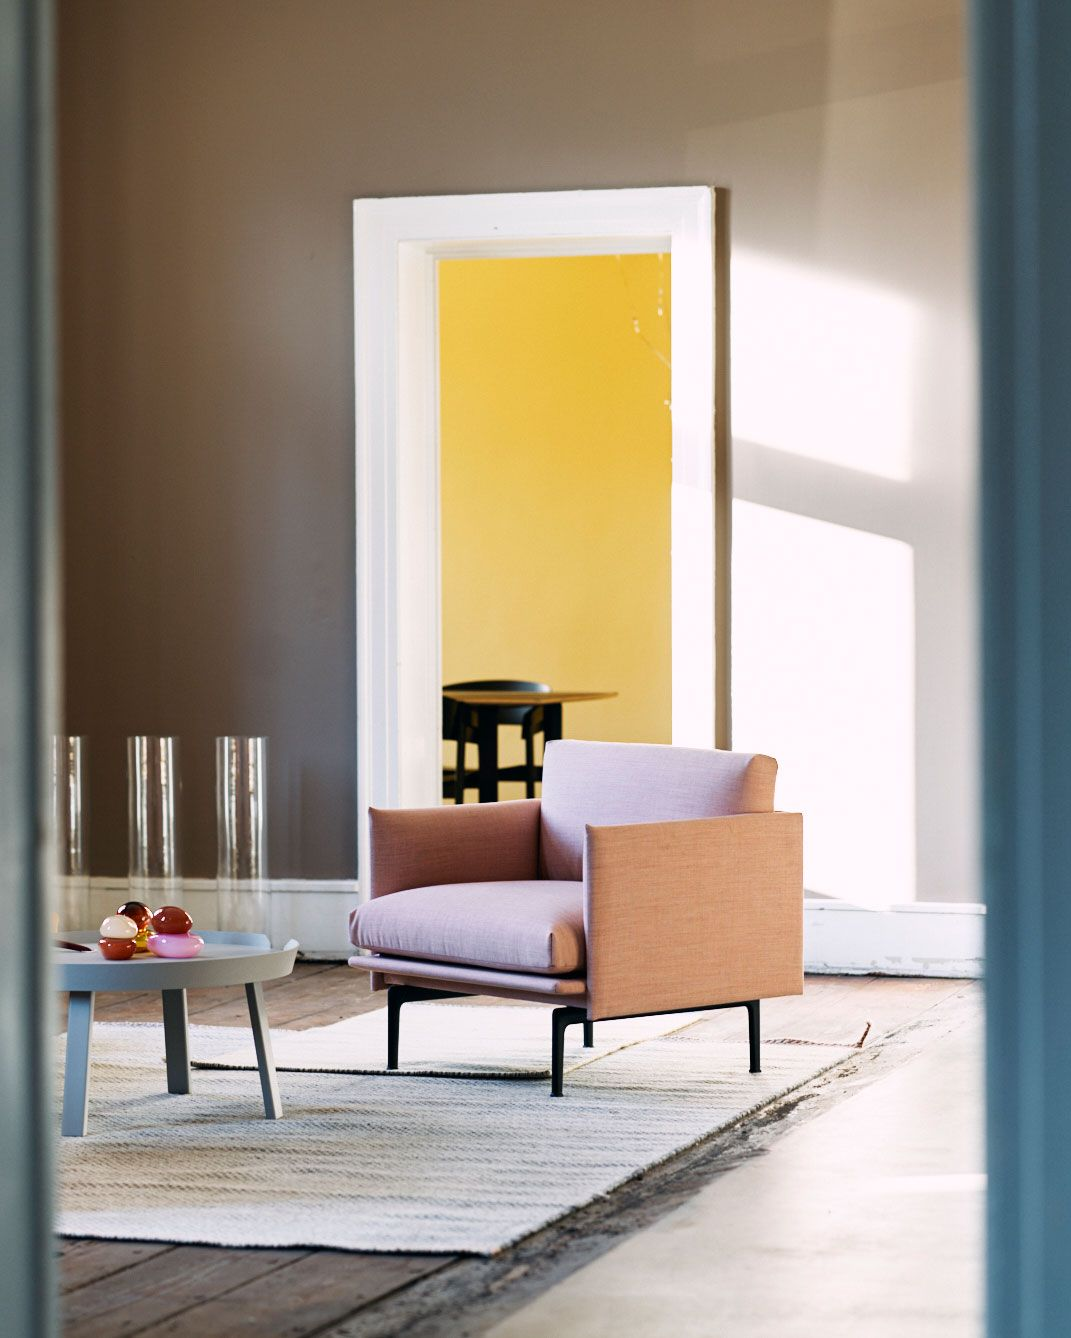 Scandinavian Living Room Lounge Chair Inspiration From Muuto The Outline Series Adds New Perspectives To The Classic Scandinavian Design Sofas Of The 1960 S